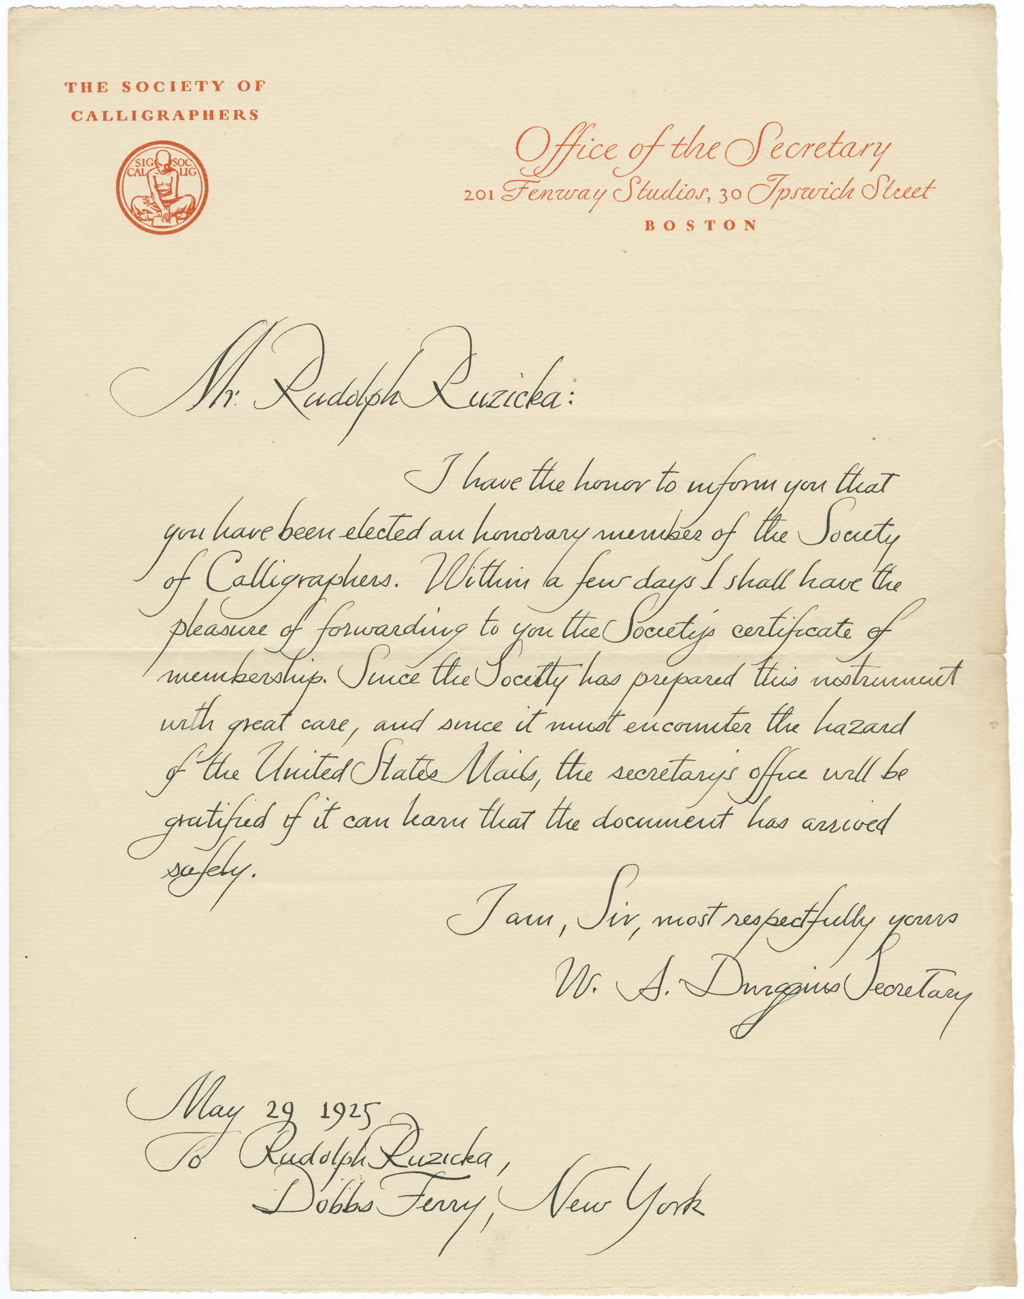 Letter from W.A. Dwiggins to Rudolph Ruzicka (29 May 1925) regarding honorary membership in the Society of Calligraphers. Courtesy of the Rauner Library, Dartmouth College.